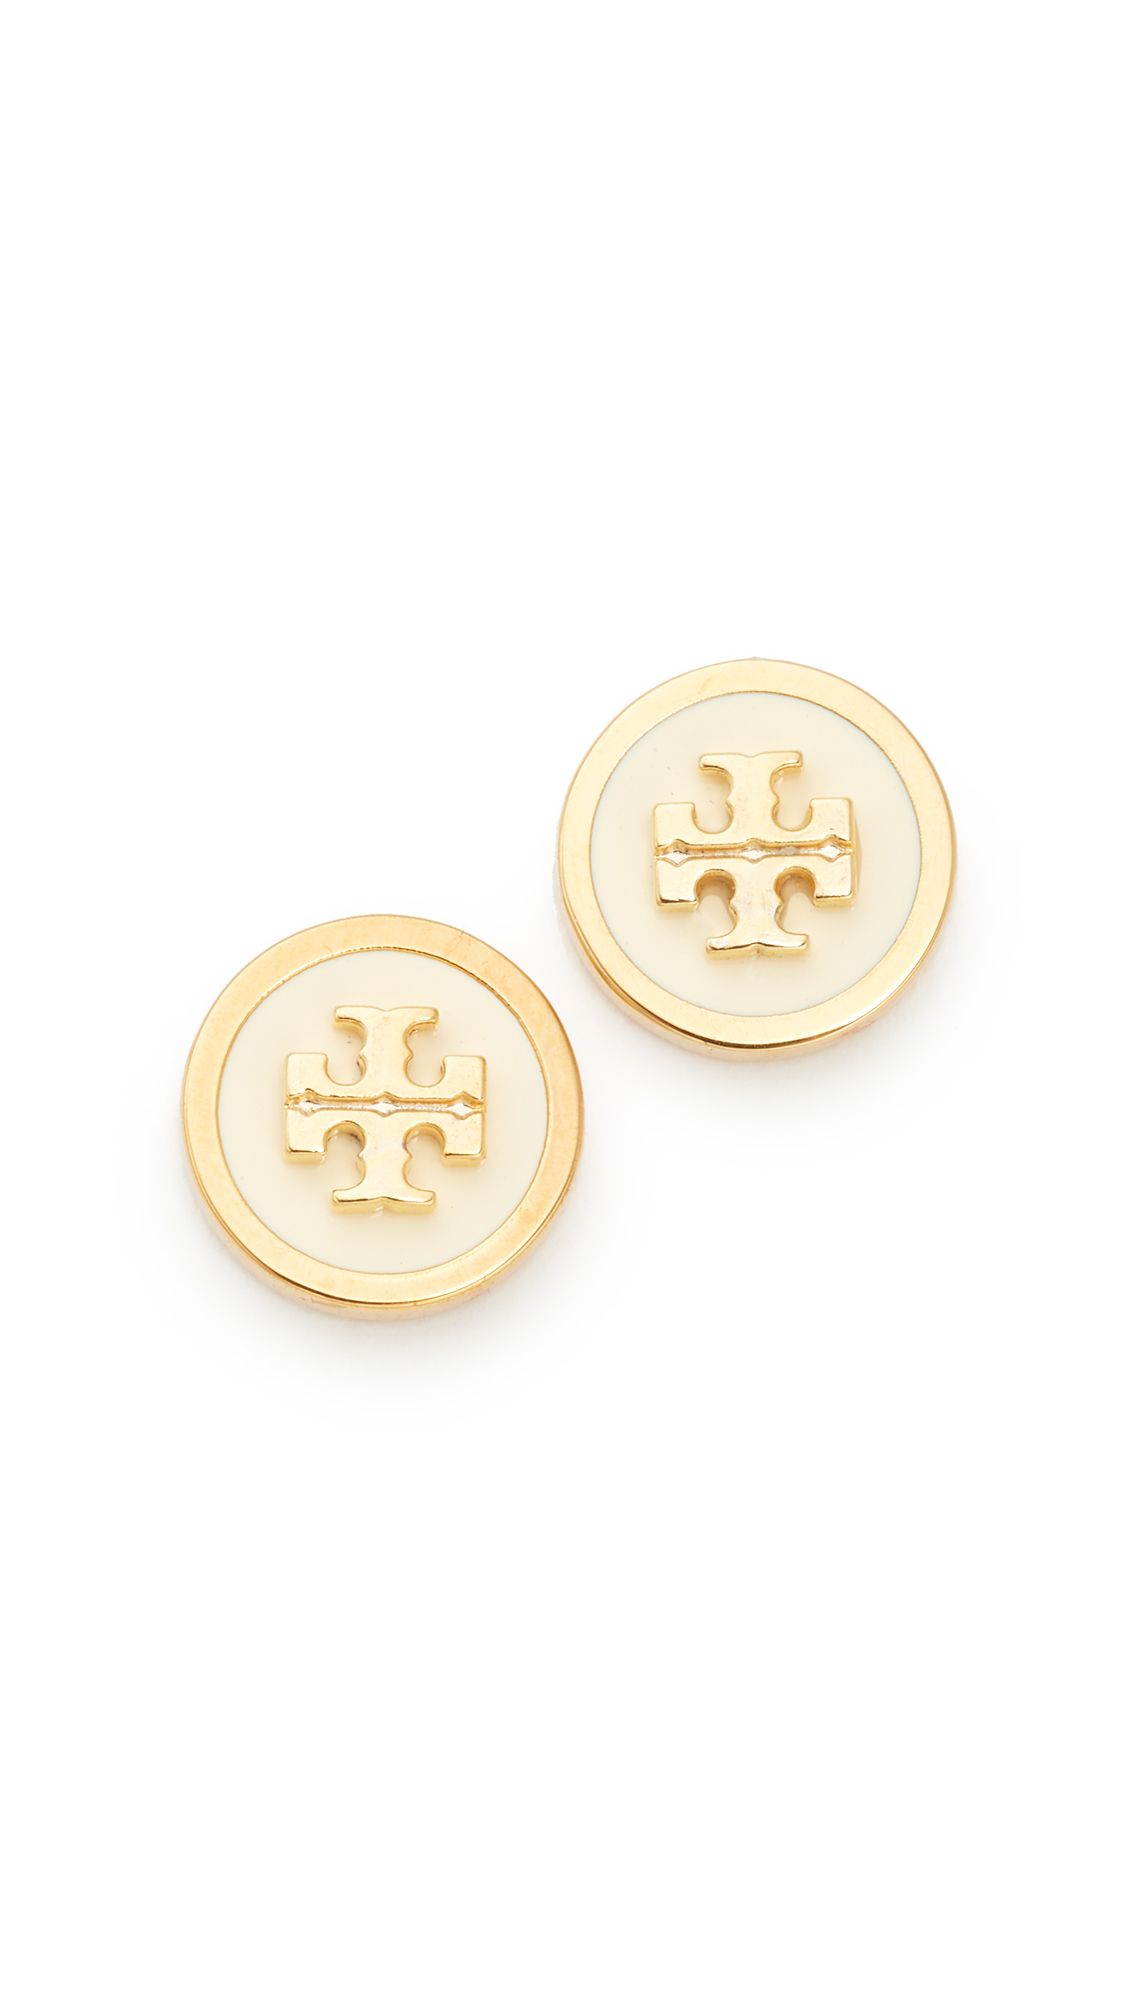 Tory Burch Raised Logo Stud Earrings - New Ivory/Tory Gold